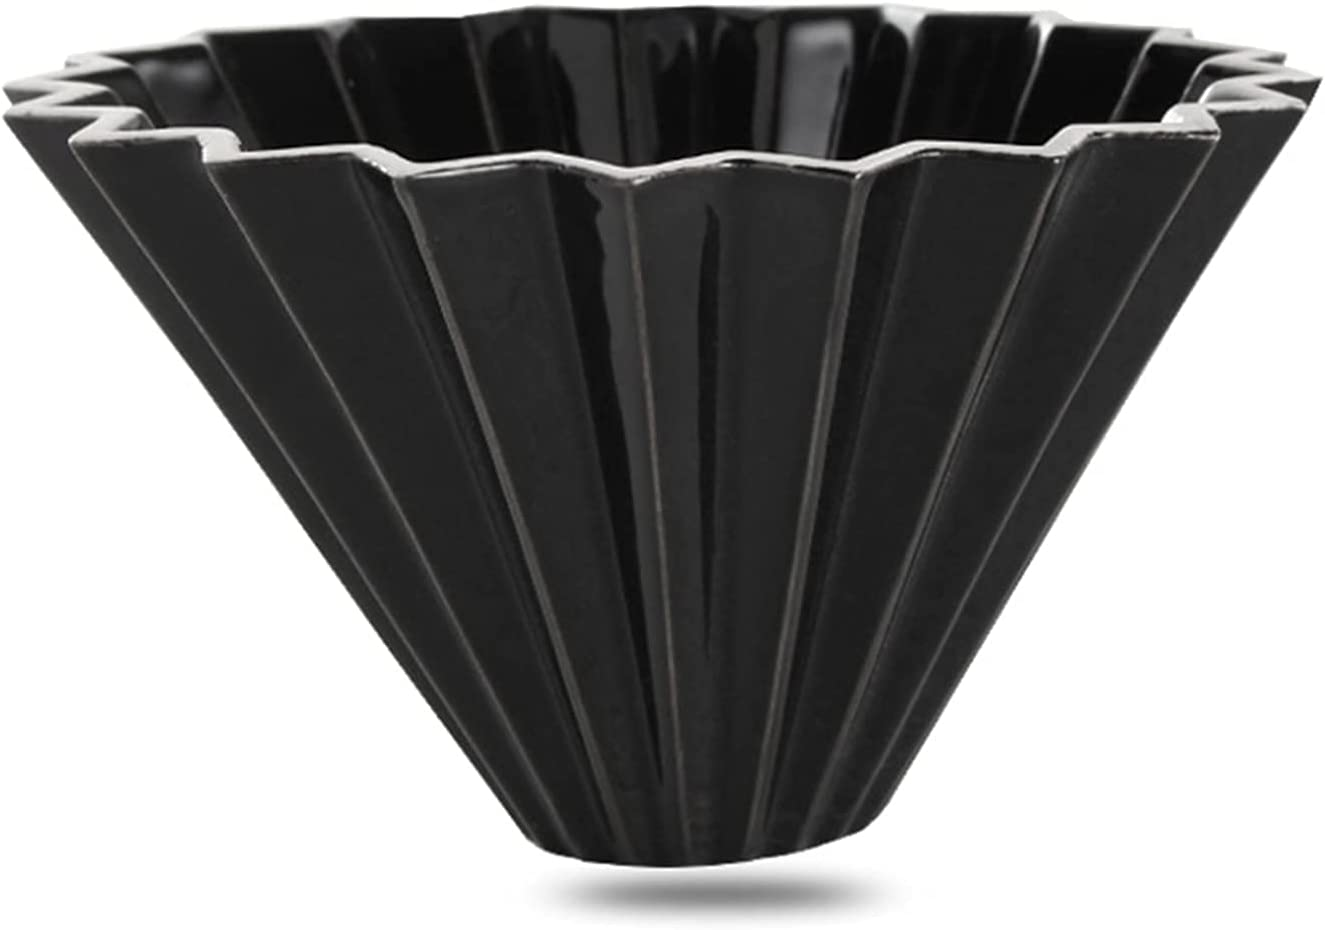 Filter funnel Home Kitchen Coffee Large-scale sale Espresso Ceramic Long-awaited Funnel